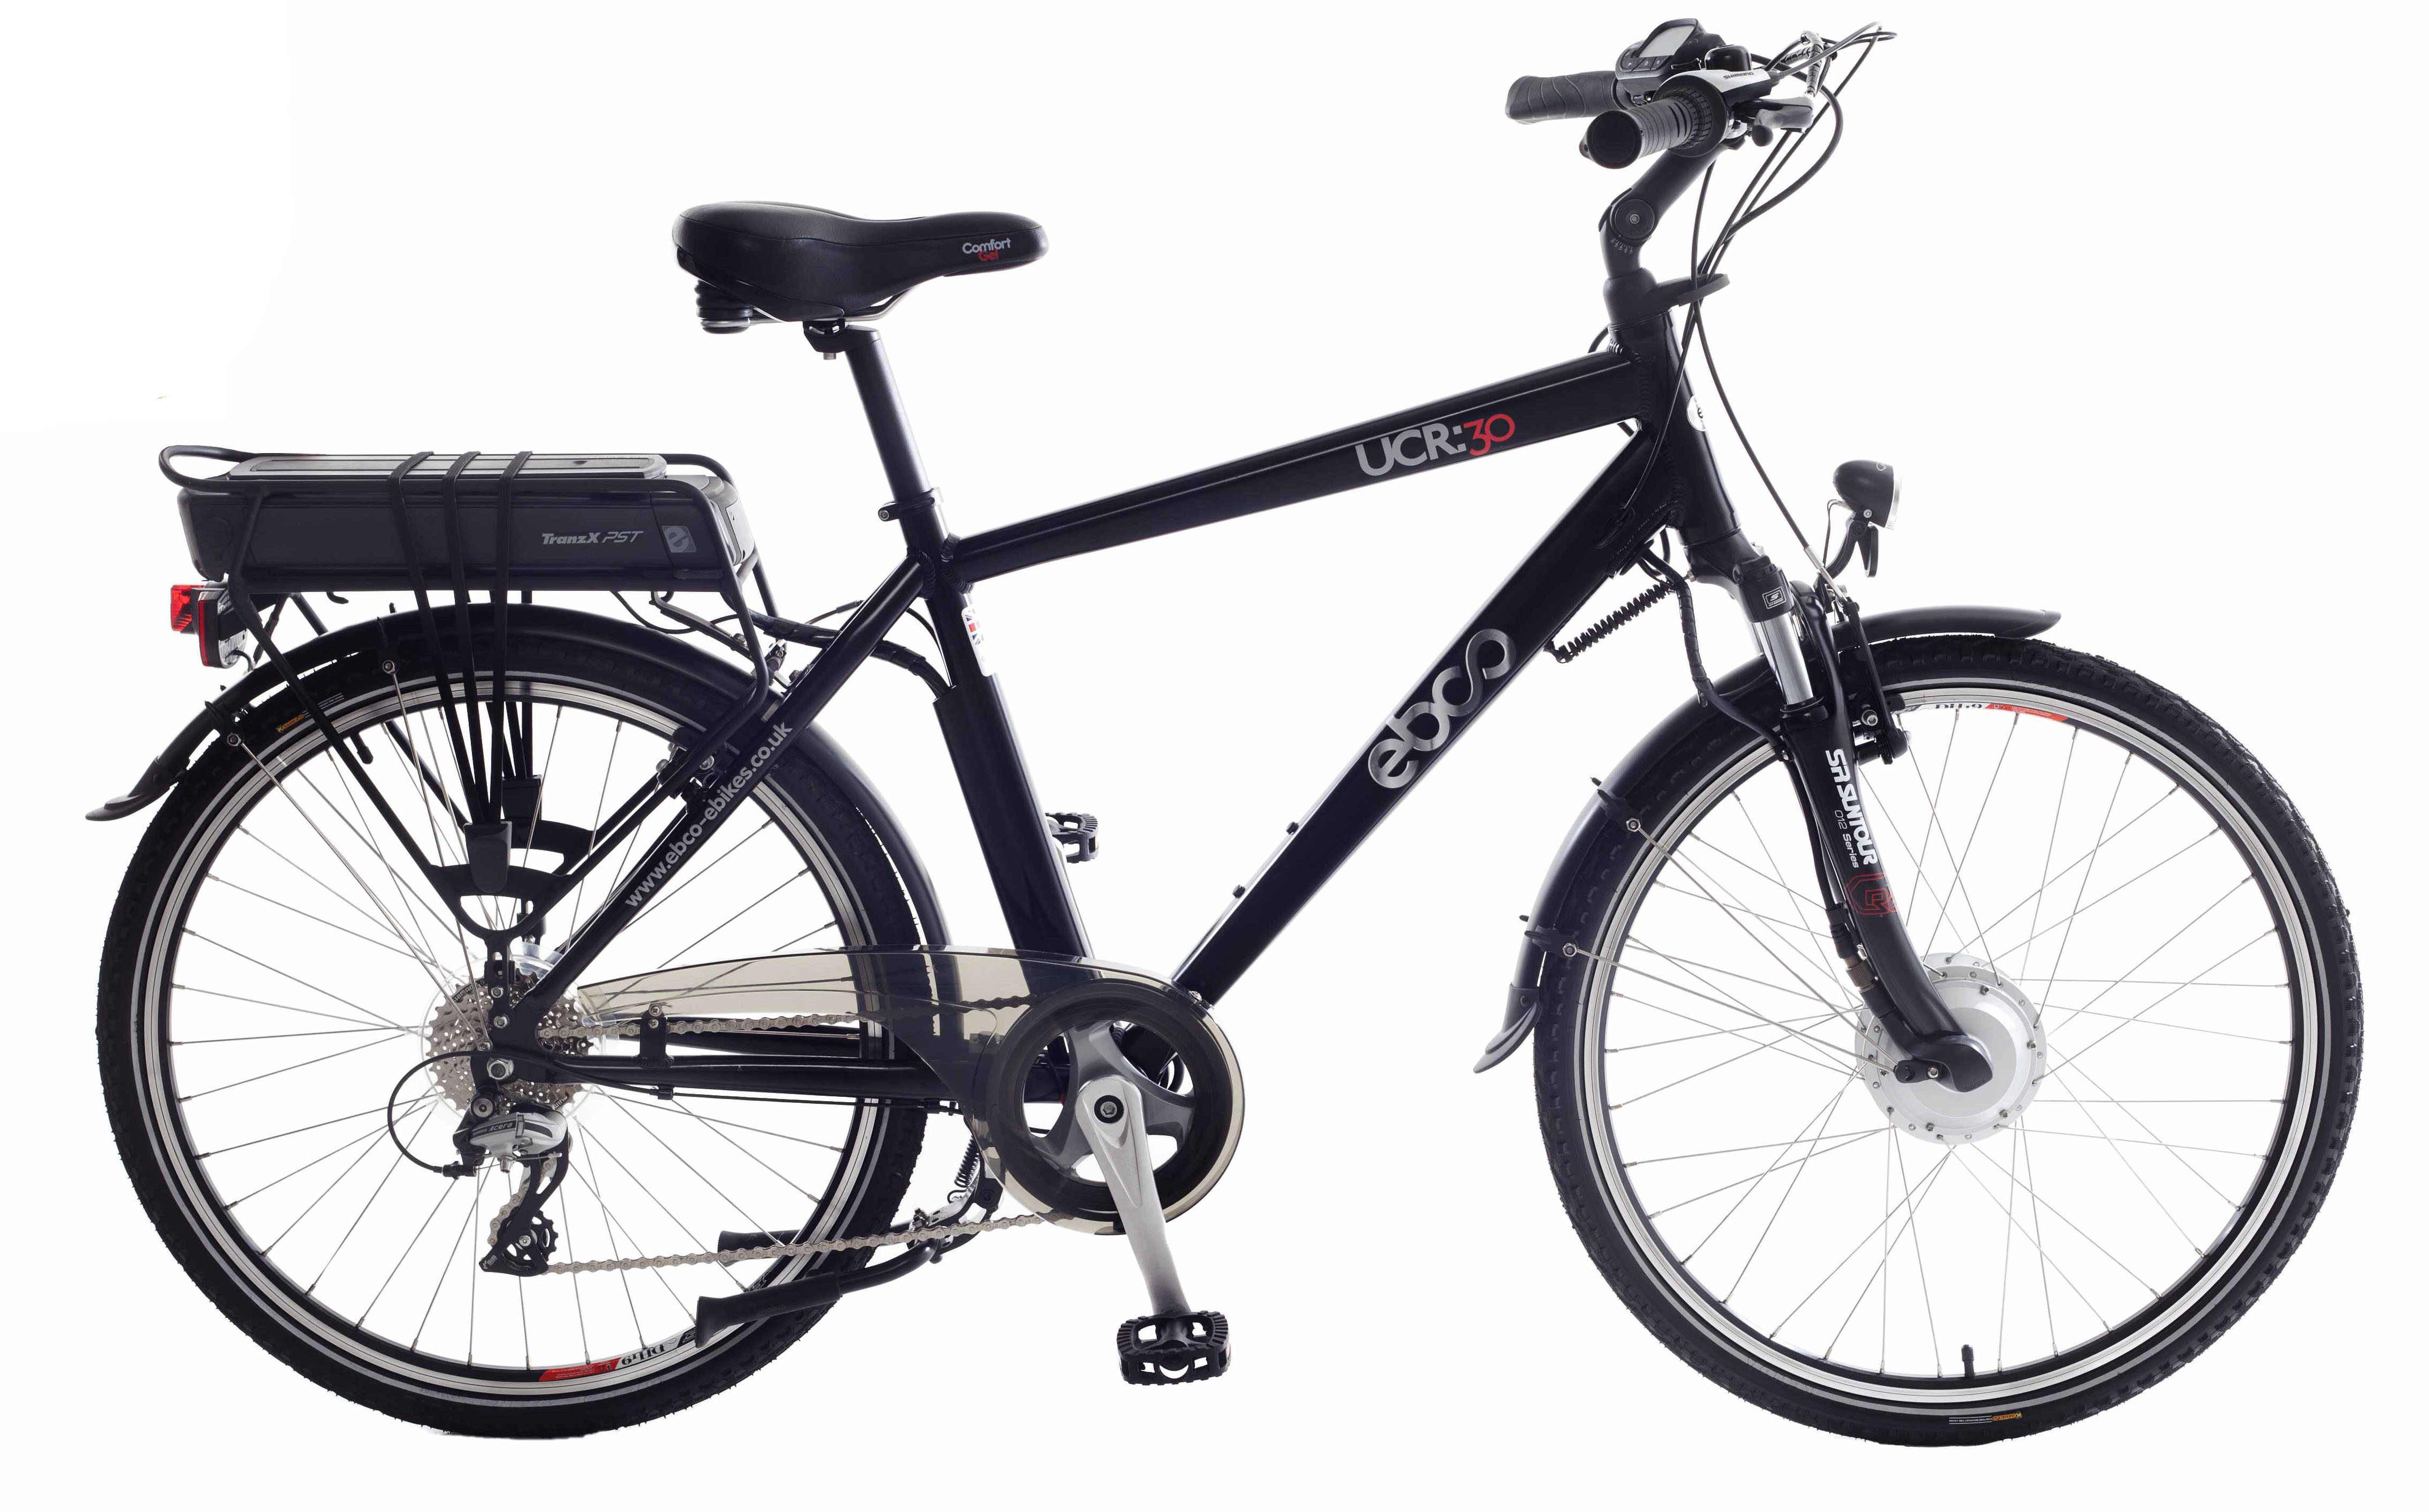 Evans Cycles and Rutland Cycling to retail EBCO e-bikes 5a3615a0a